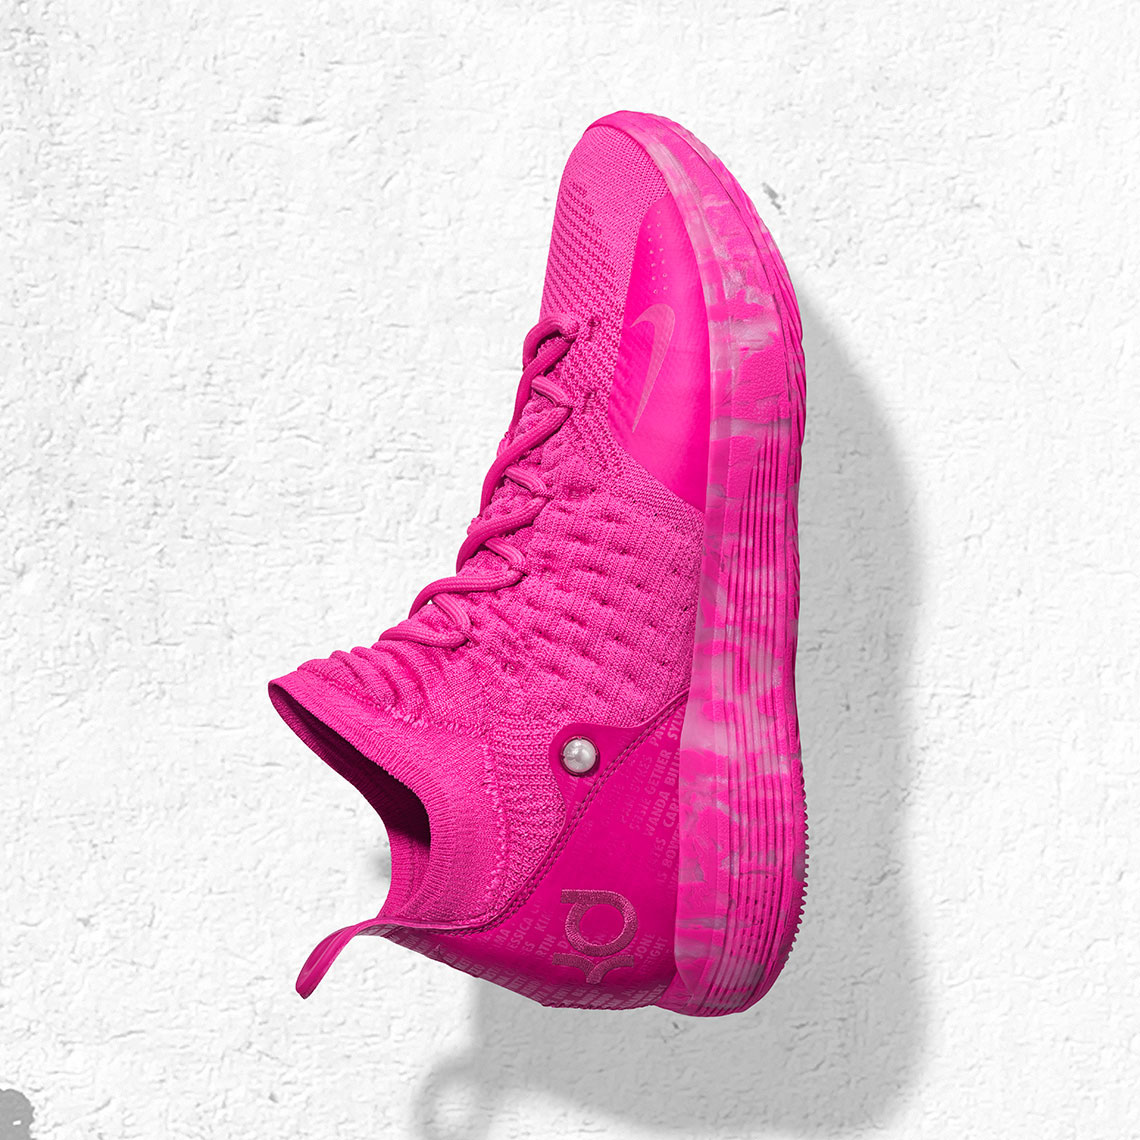 9e752b94e3db Nike s latest Air Max cushioning unit arrives under a basketball-inspired  upper that also acknowledges Charlotte s racing culture